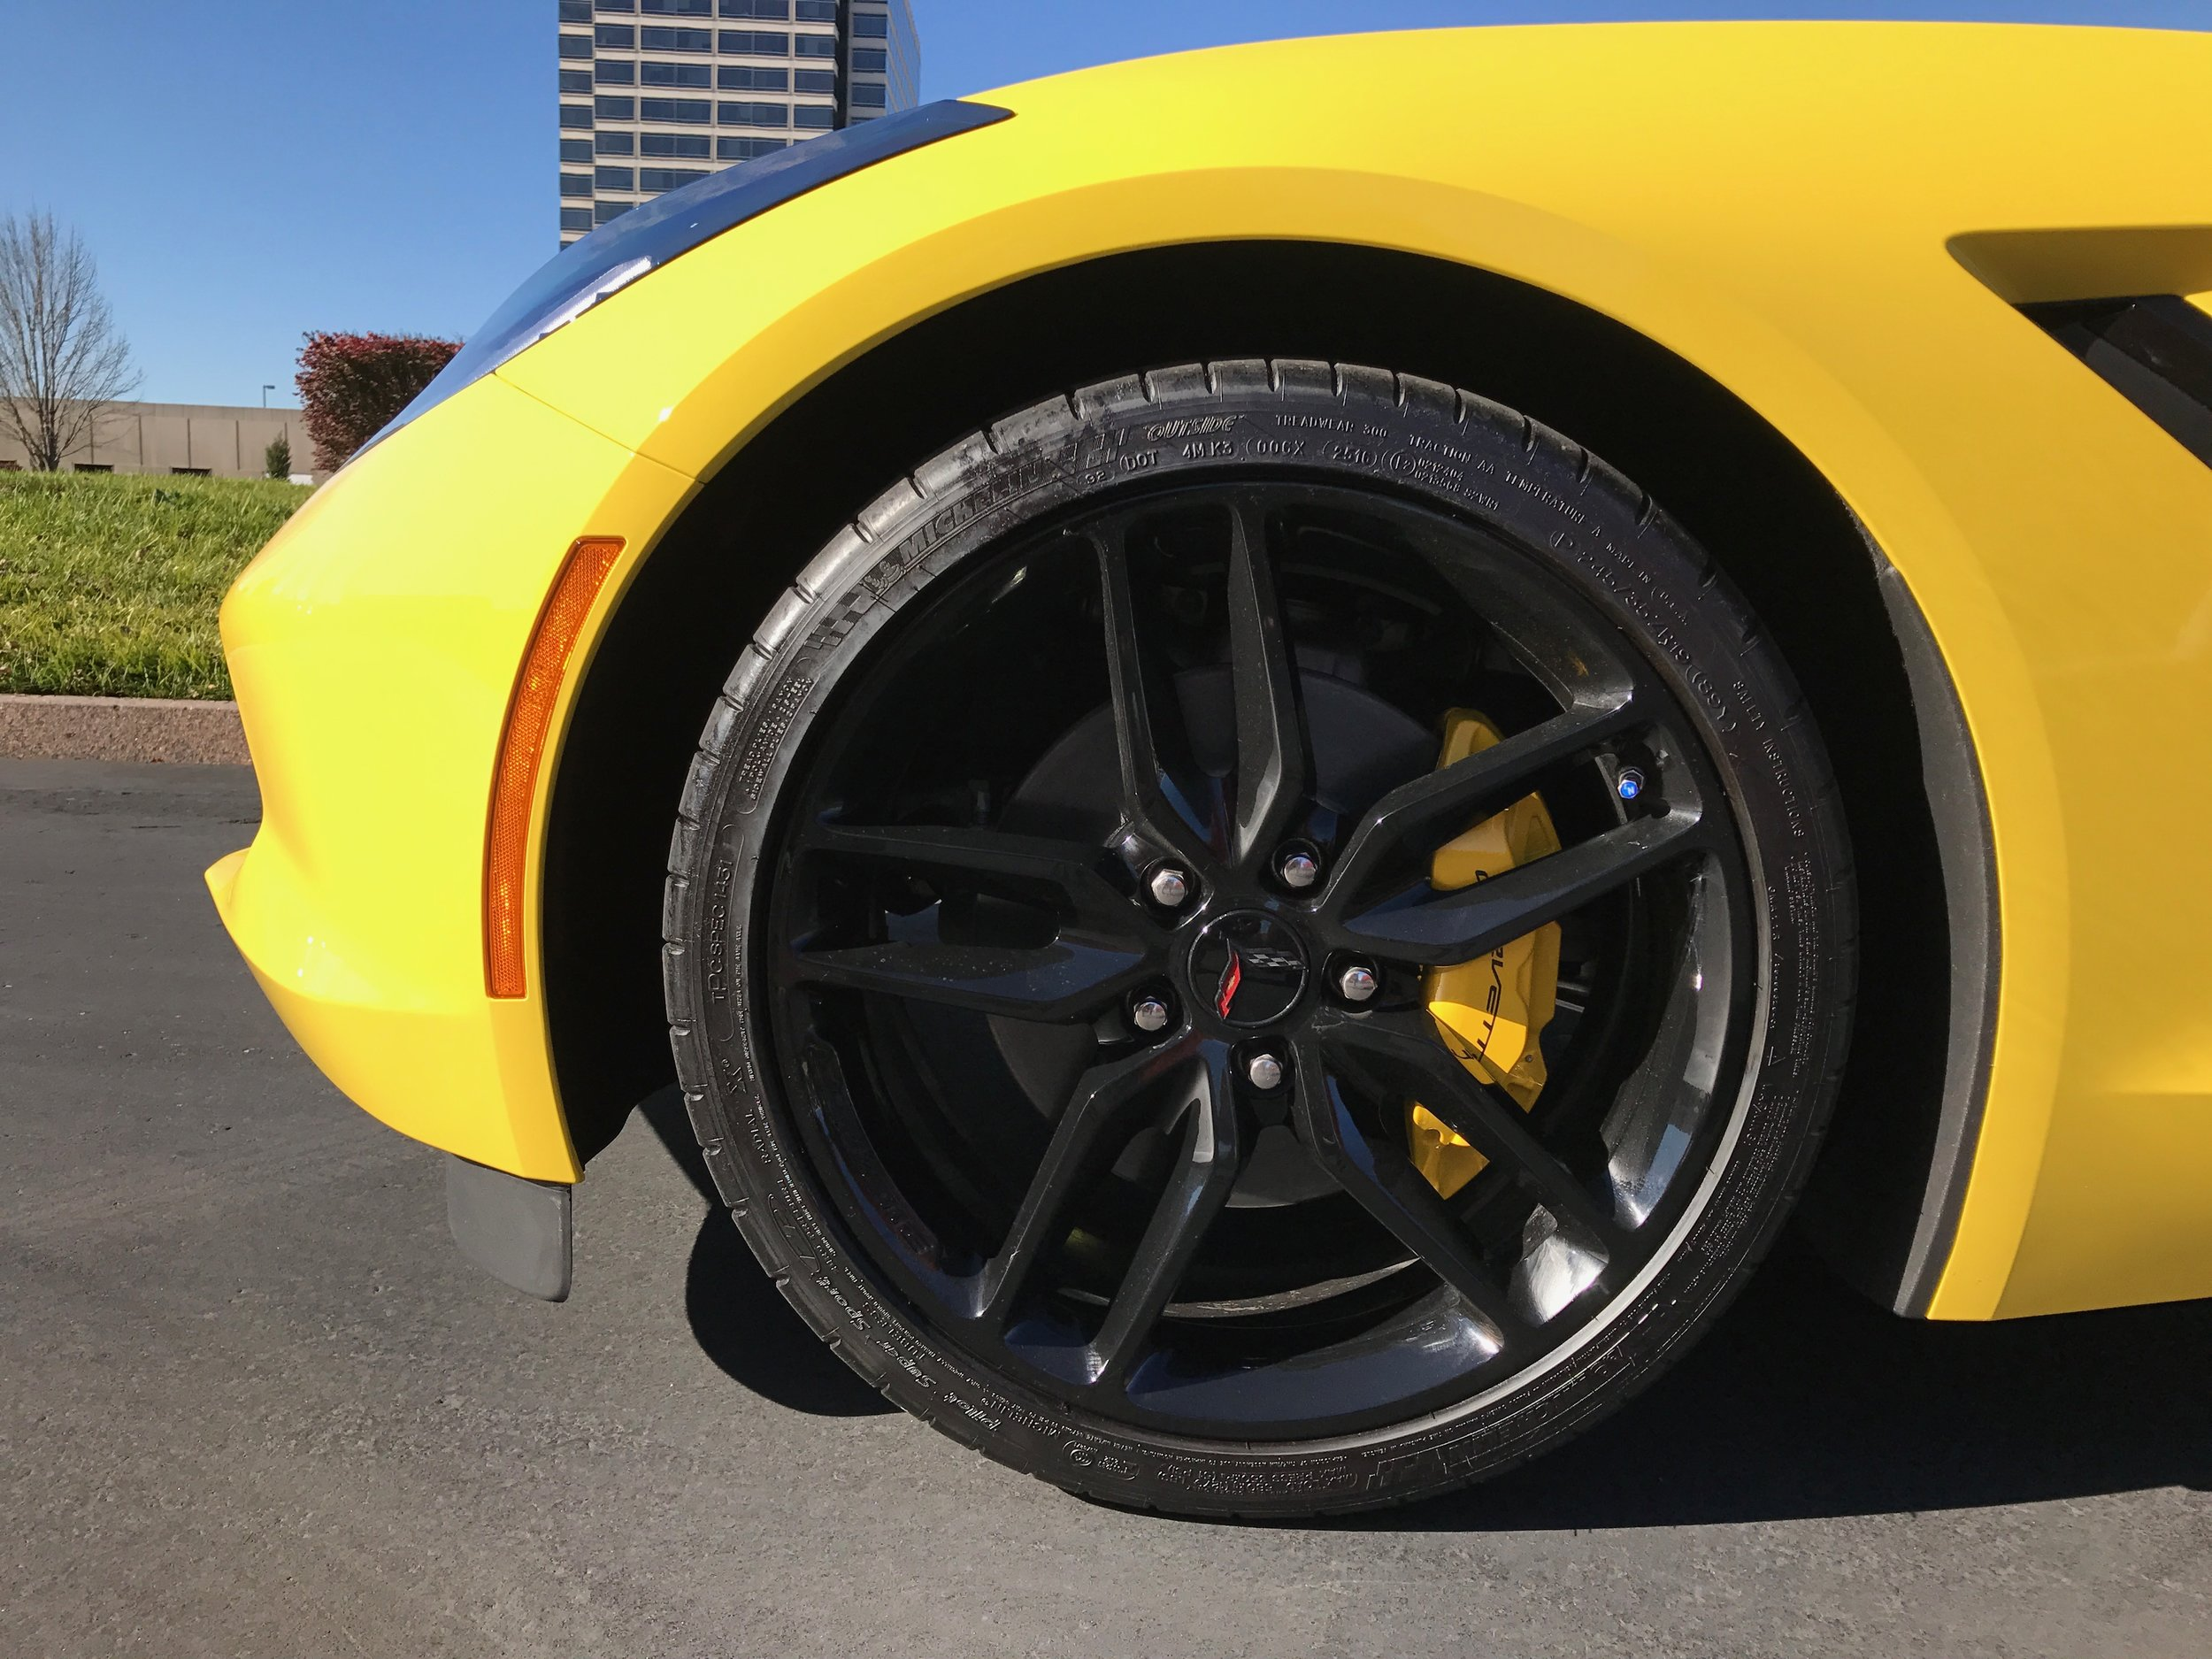 The brakes, wheels, and rubber are not lacking for grip or stopping prowess.  (Image:  KanonOnCars.com)